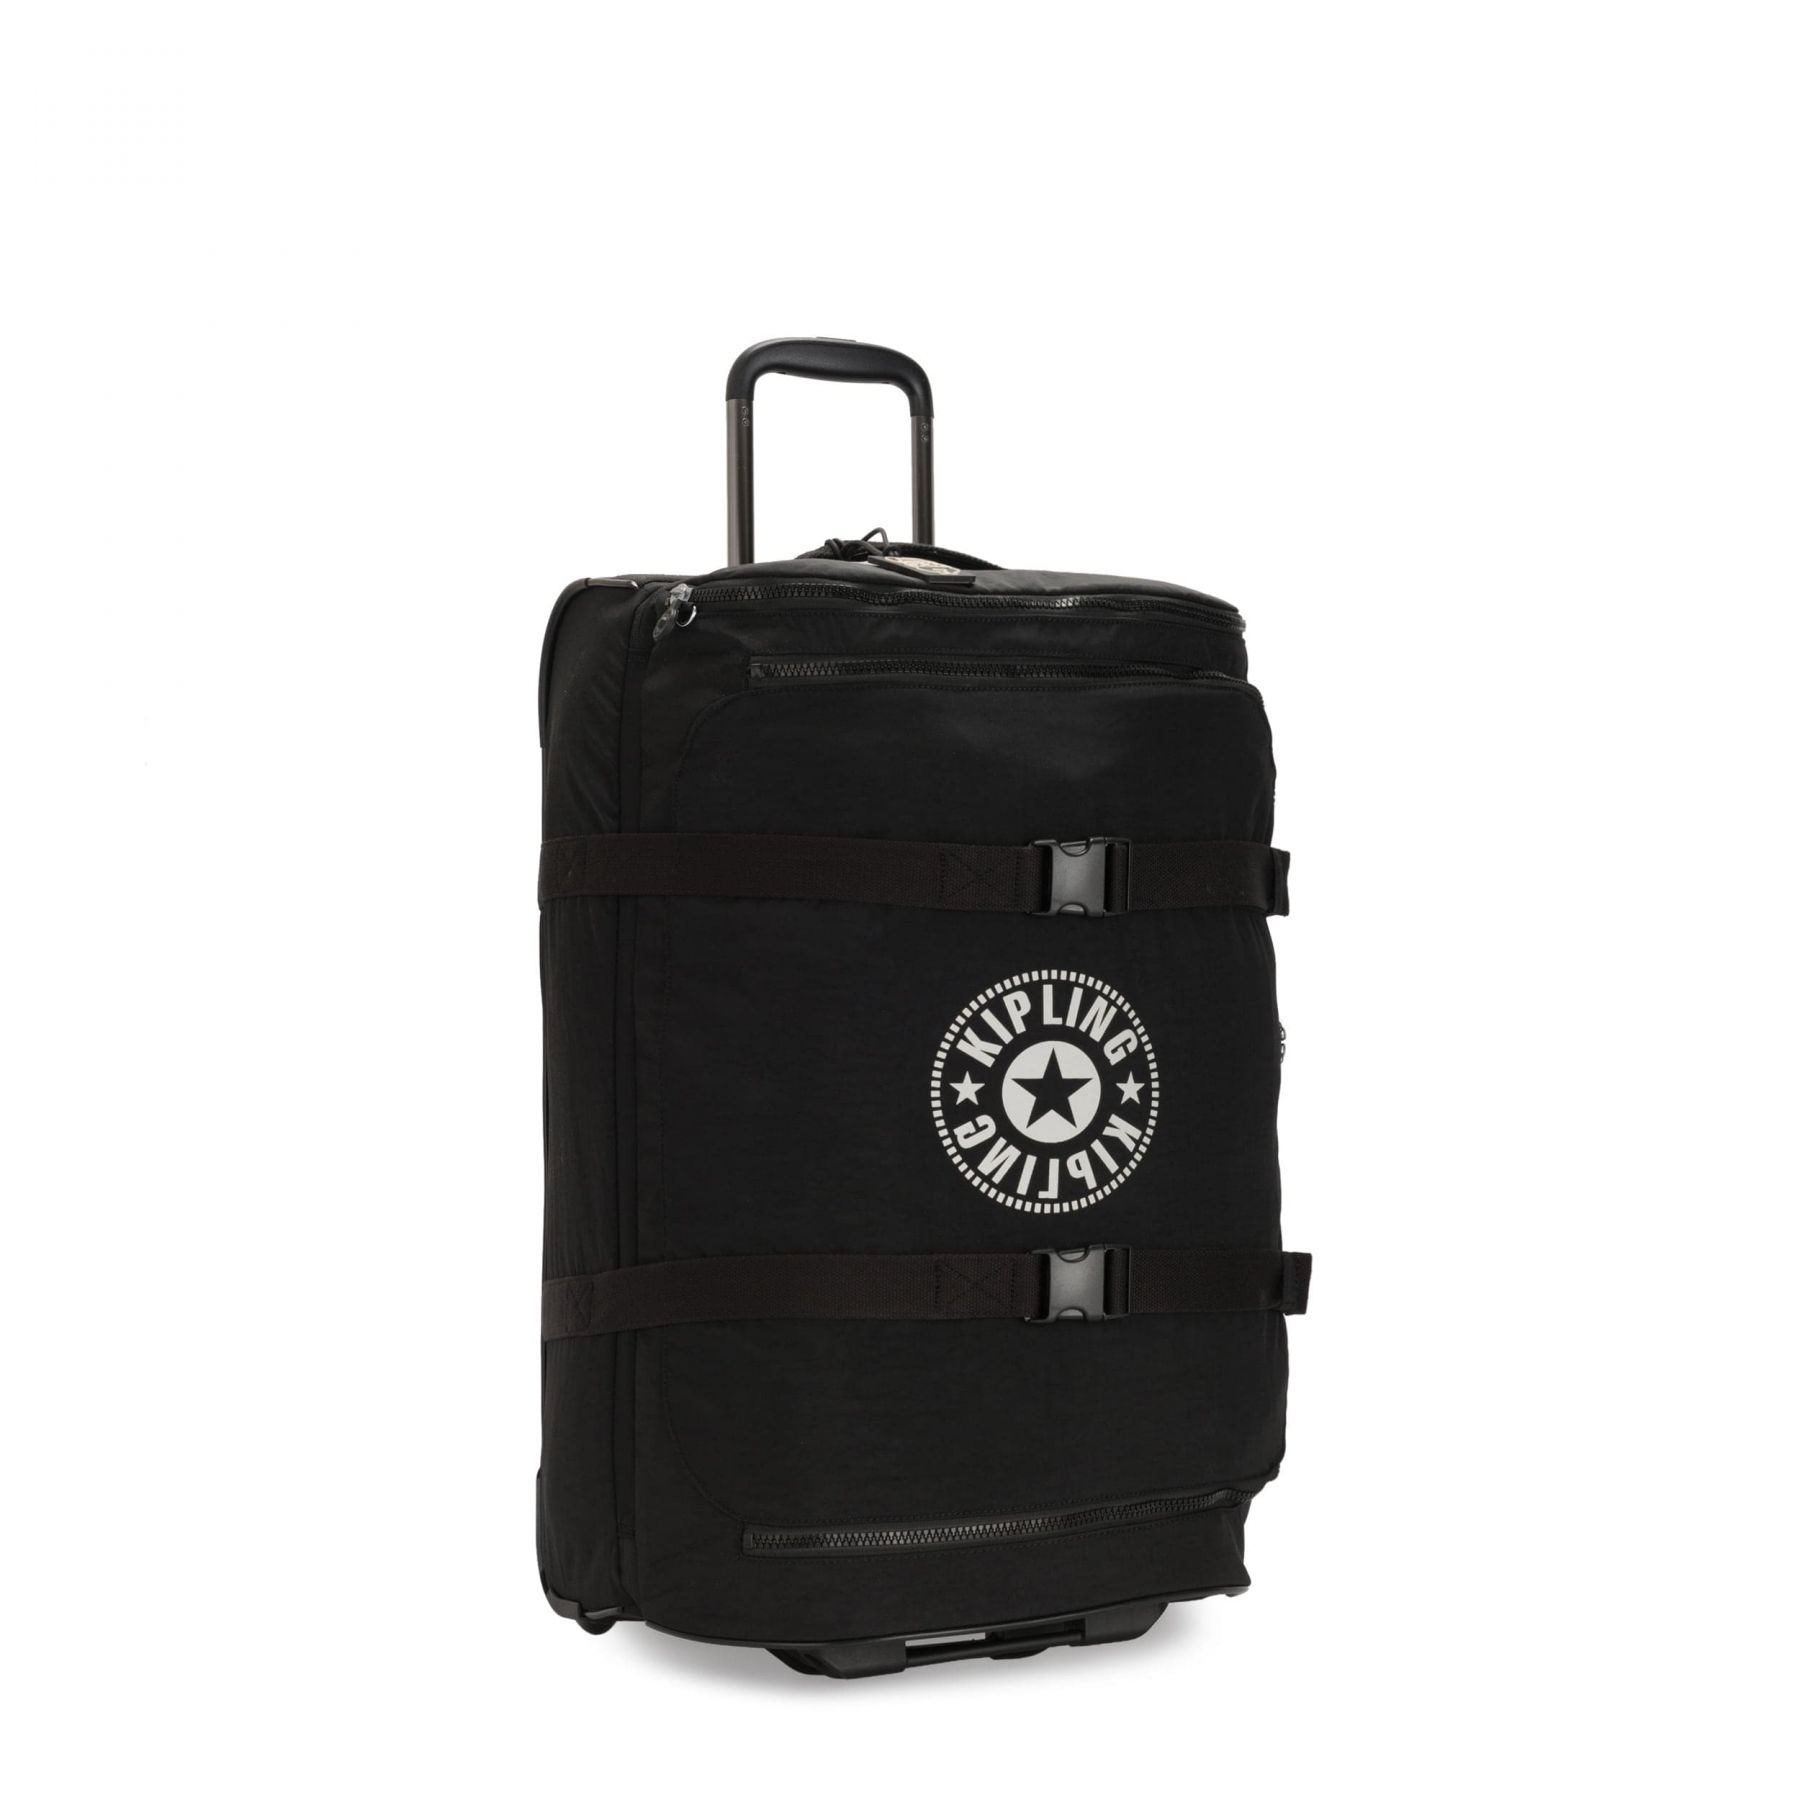 DISTANCE M Latest Luggage by Kipling - view 4